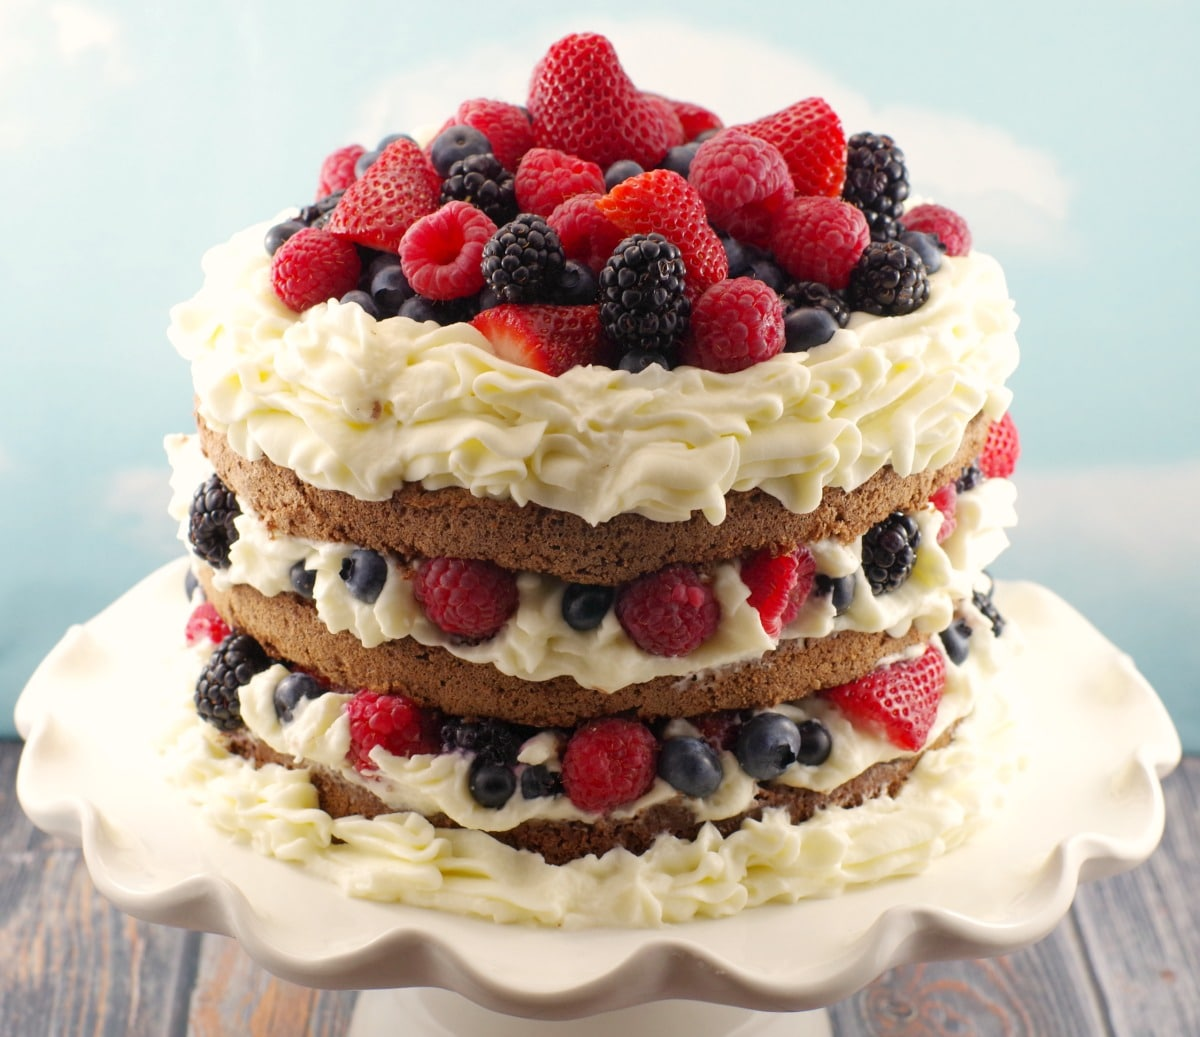 Italian Chocolate Sponge cake with summer berries, whipped cream icing and chocolate mousse